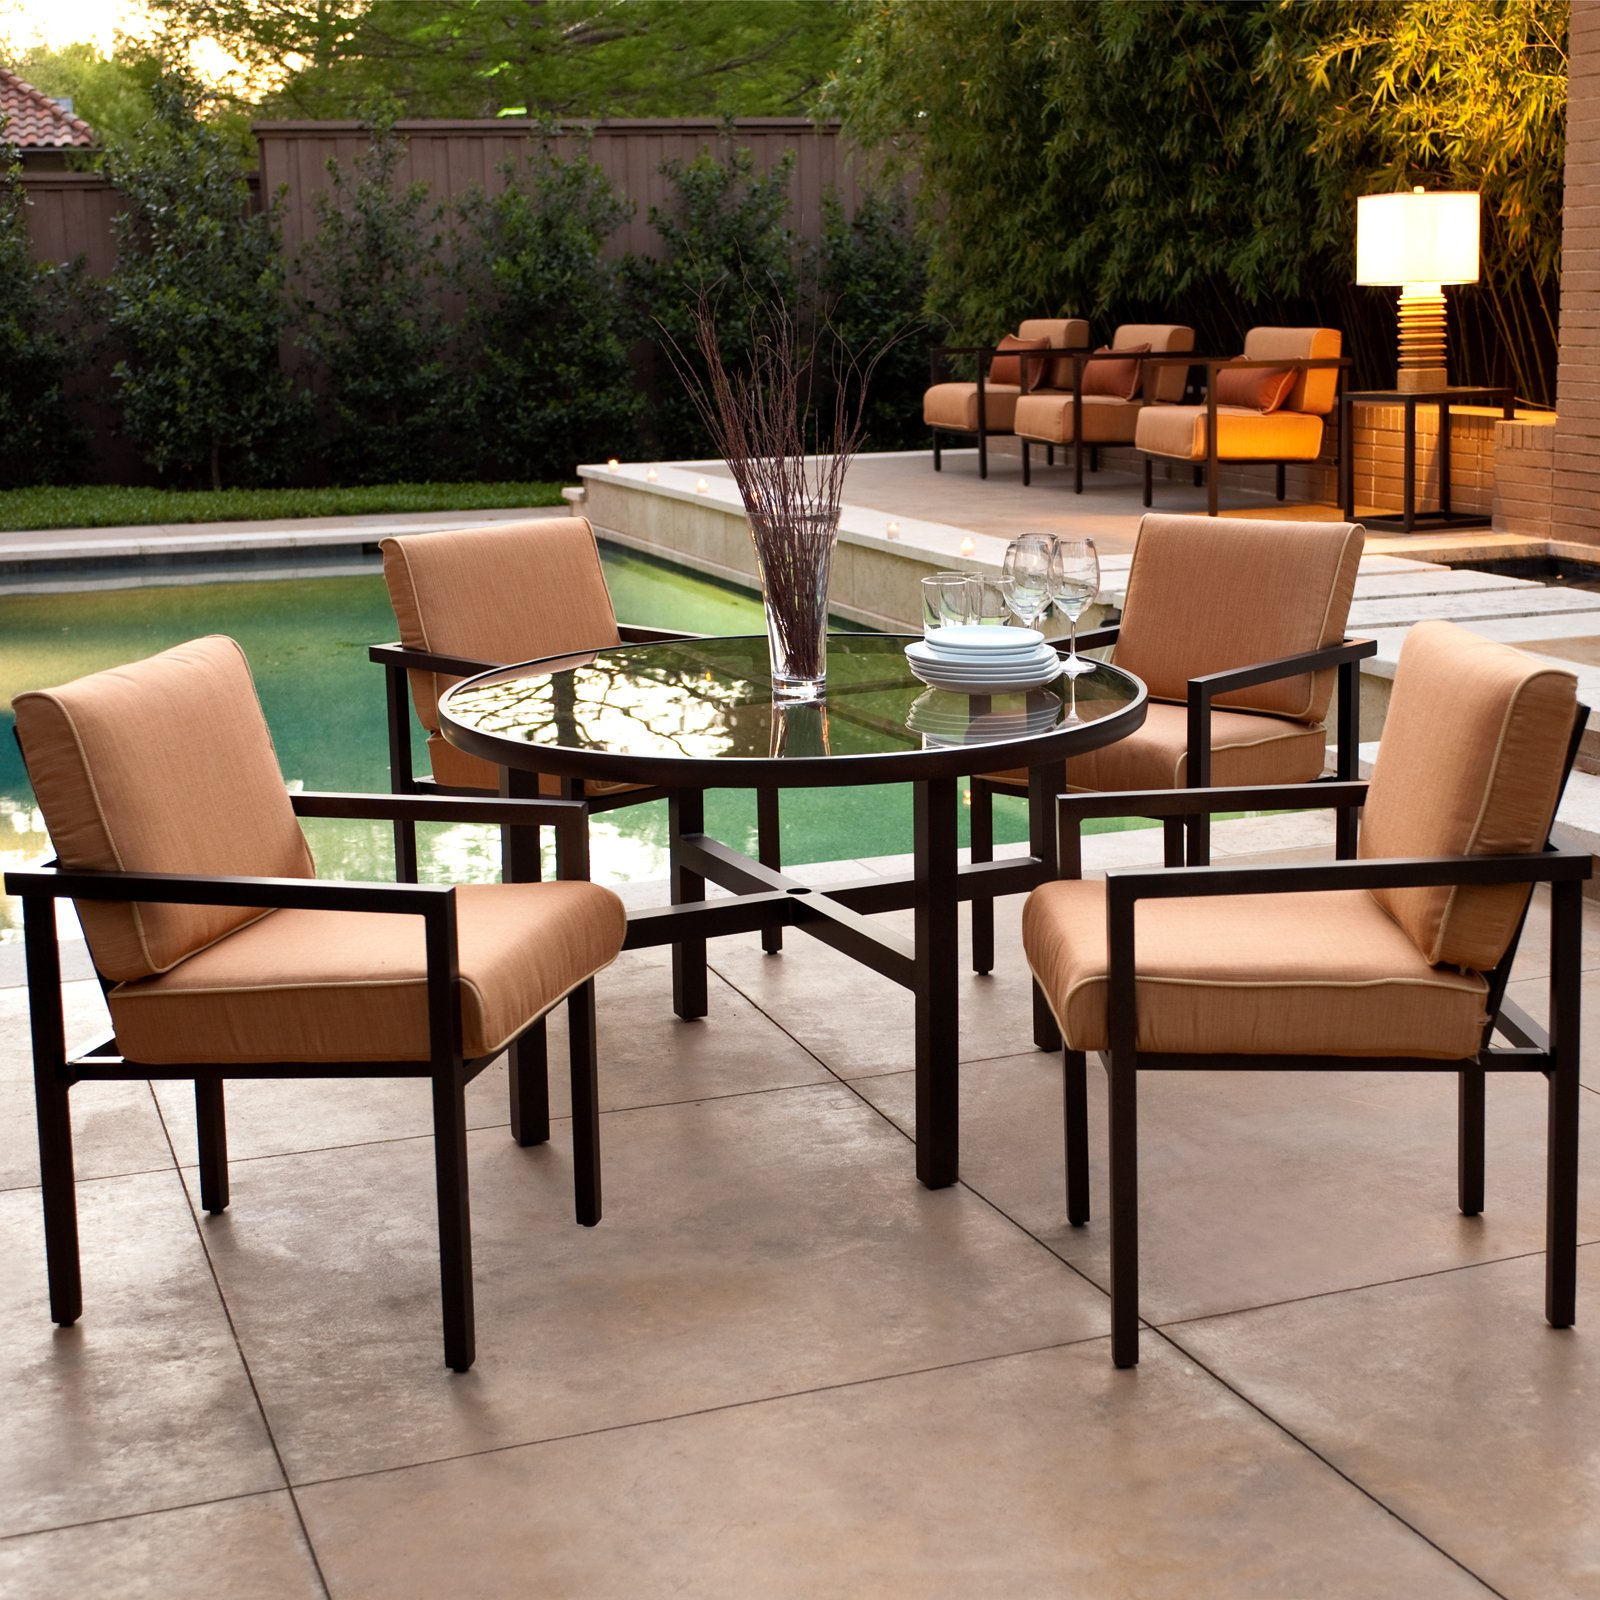 Places to go for affordable modern outdoor furniture for Outdoor patio set